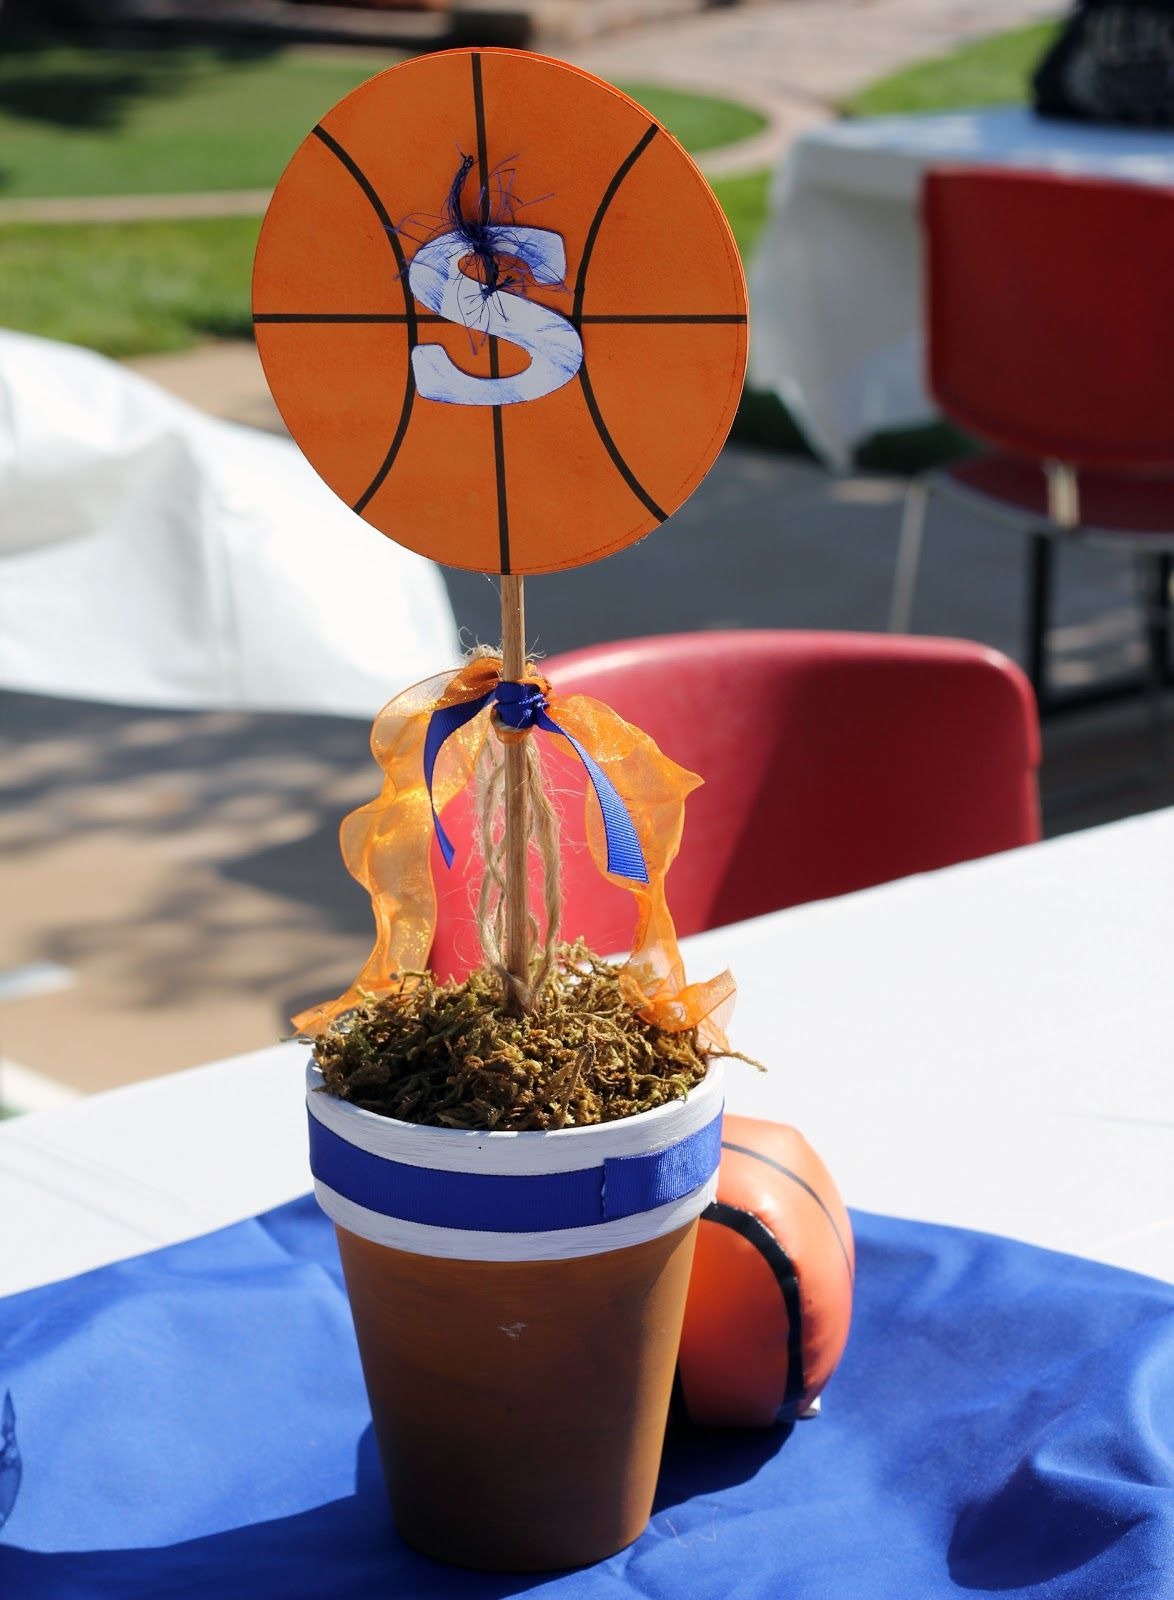 Basketball banquet centerpieces